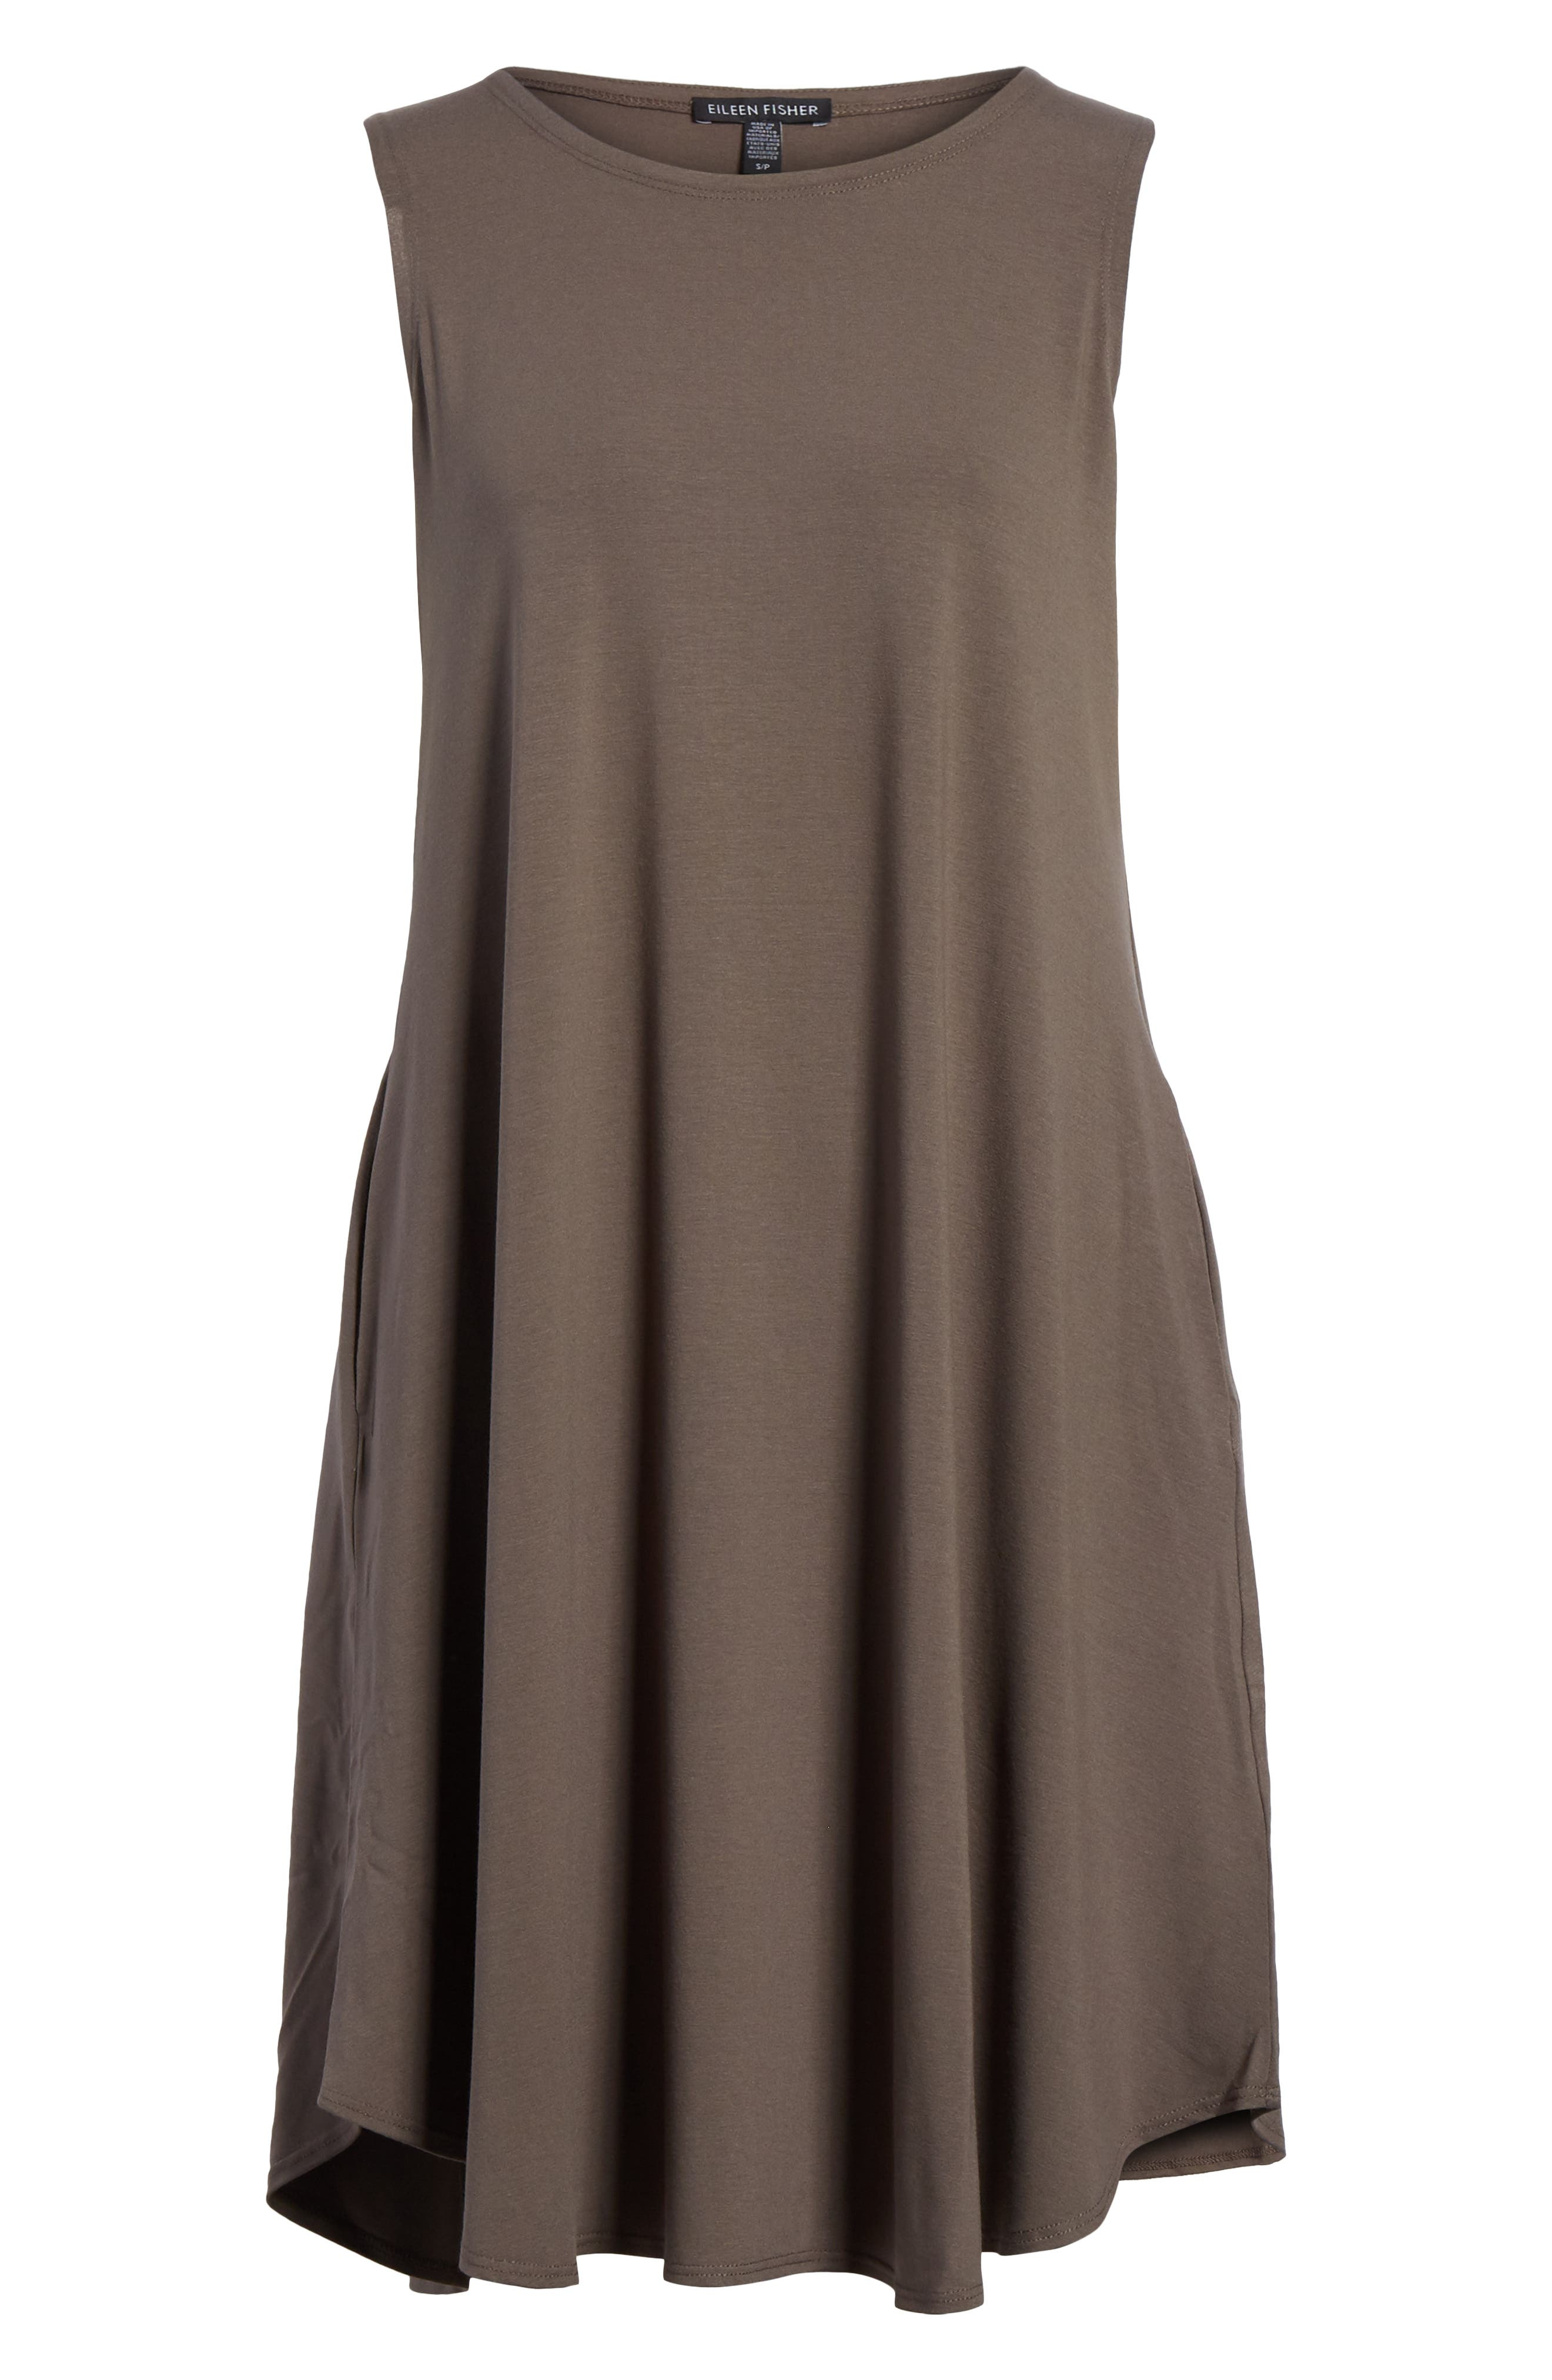 EILEEN FISHER,                             Jersey Jewel Neck Flare Dress,                             Alternate thumbnail 6, color,                             245